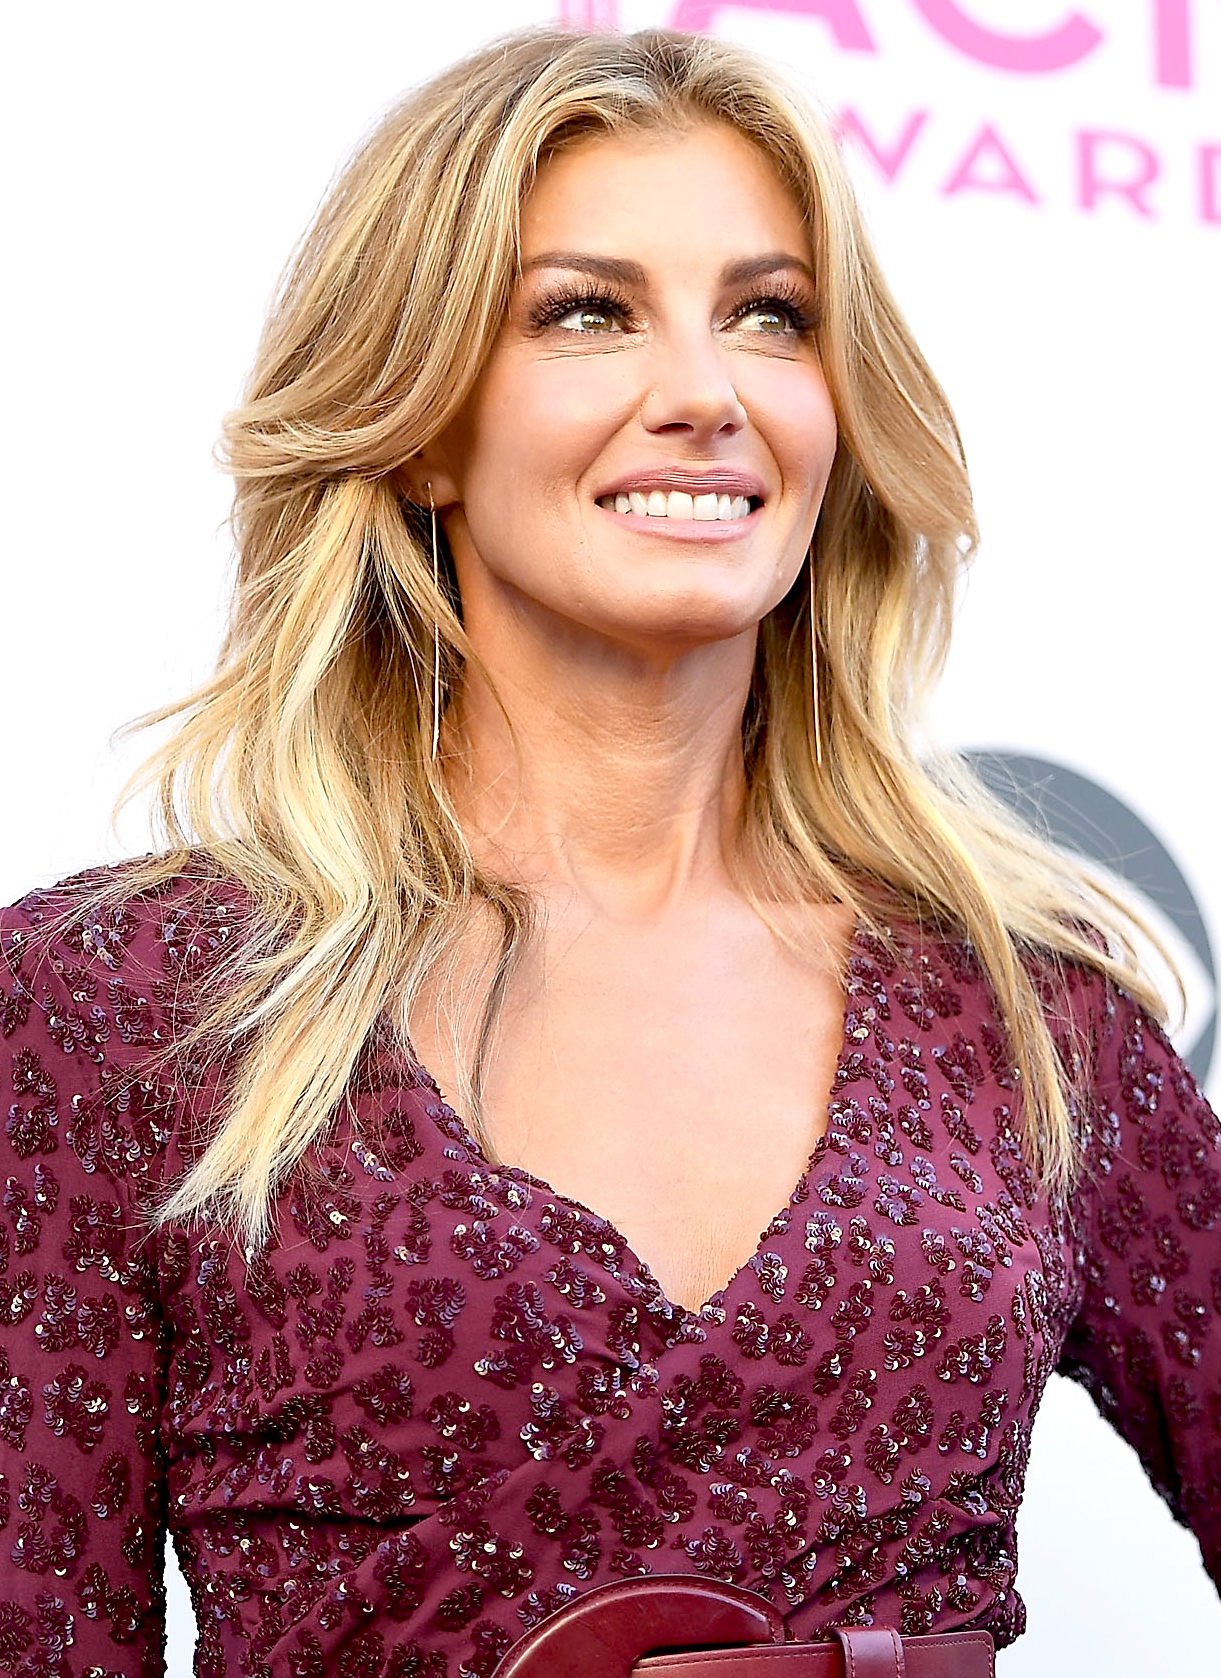 Faith Hill attends the 52nd Academy Of Country Music Awards at T-Mobile Arena on April 2, 2017 in Las Vegas, Nevada.